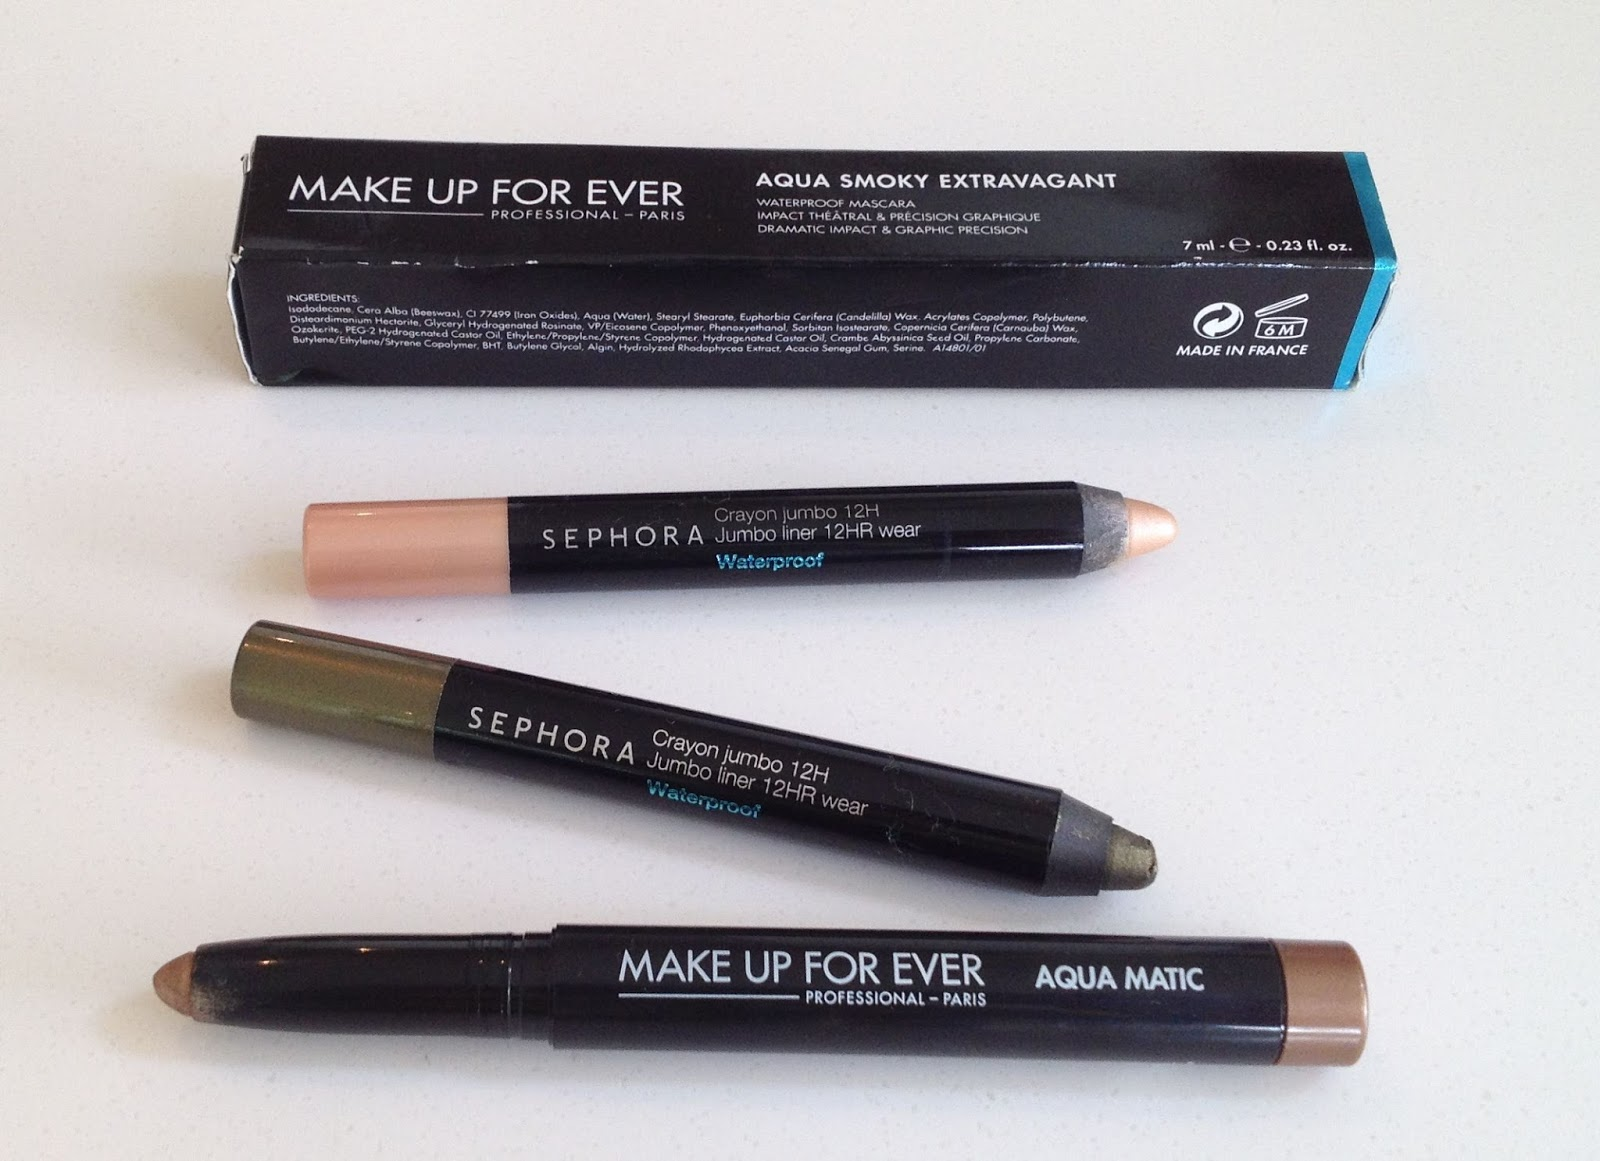 Sephora Waterproof 12H Jumbo Liner and Make Up Forever Aquamatic and Aqua Smoky Extravagan